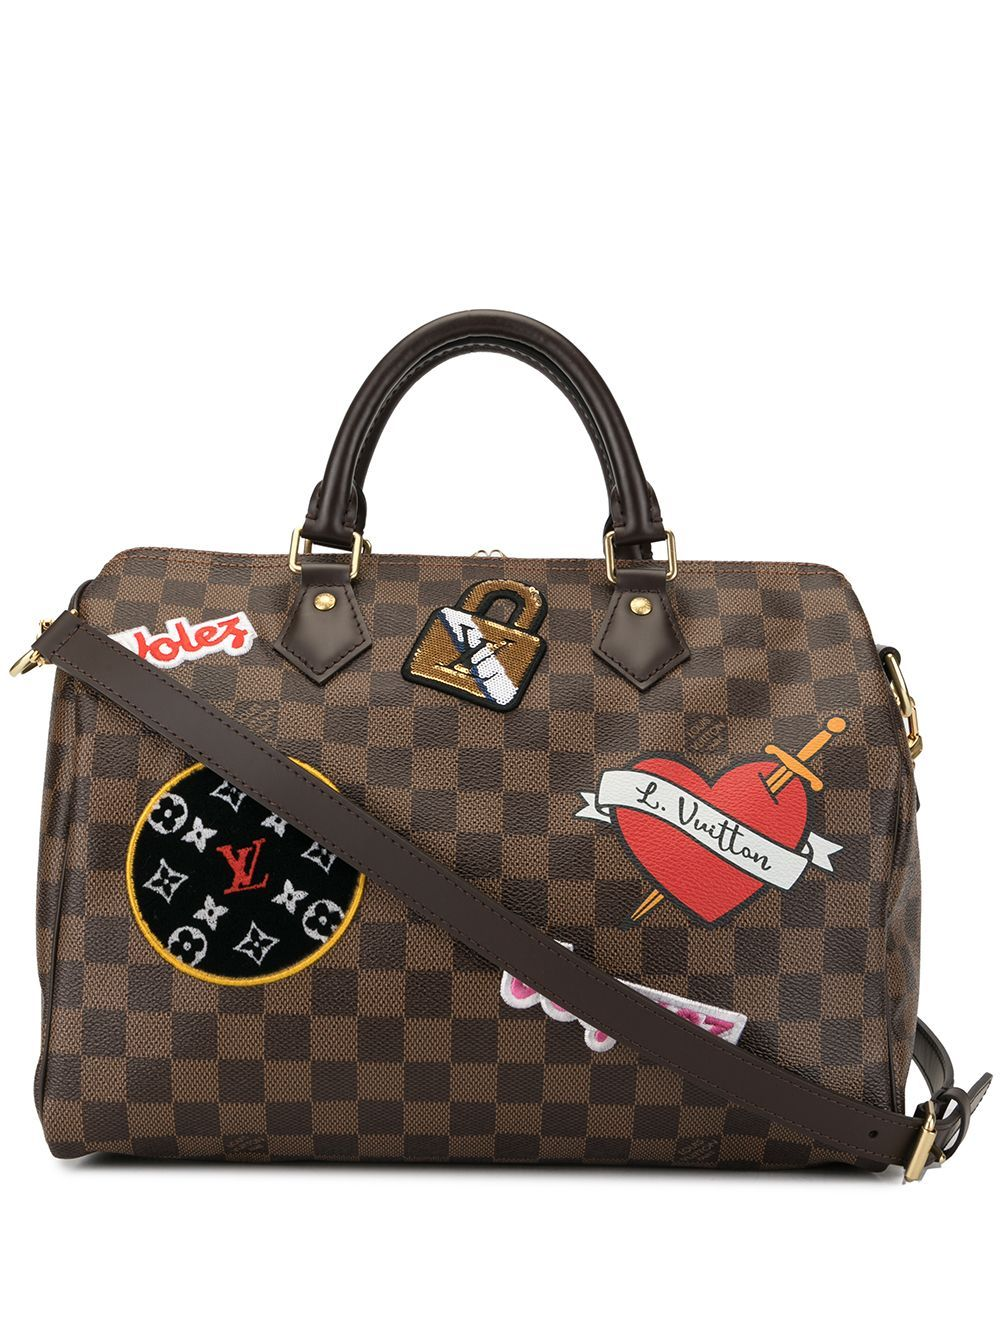 Louis Vuitton Pre Owned Patches Speedy Bandouliere 30 2way Bag Brown Louis Vuitton Louis Vuitton Speedy Bag Speedy Bandouliere 30